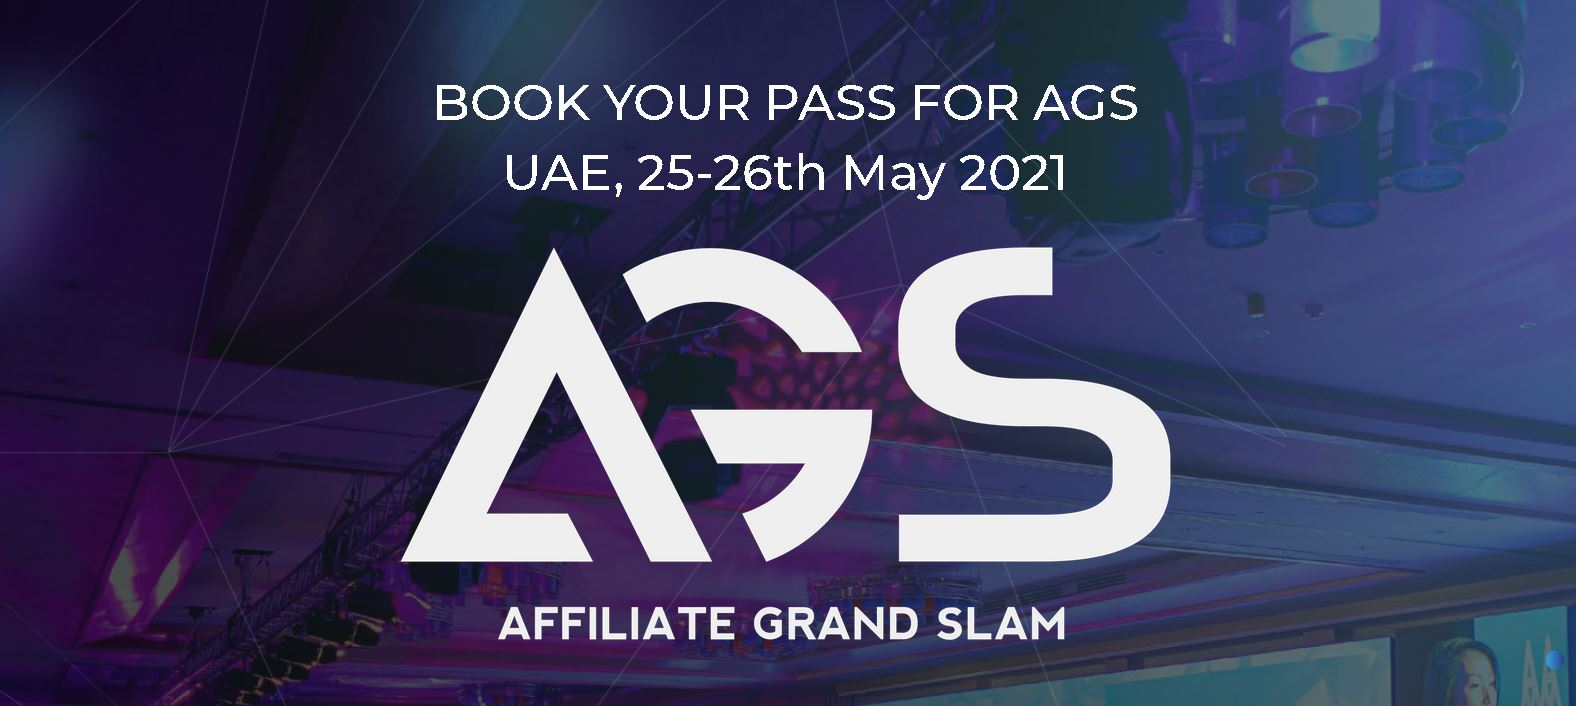 AGS UAE organized by SiGMA Group